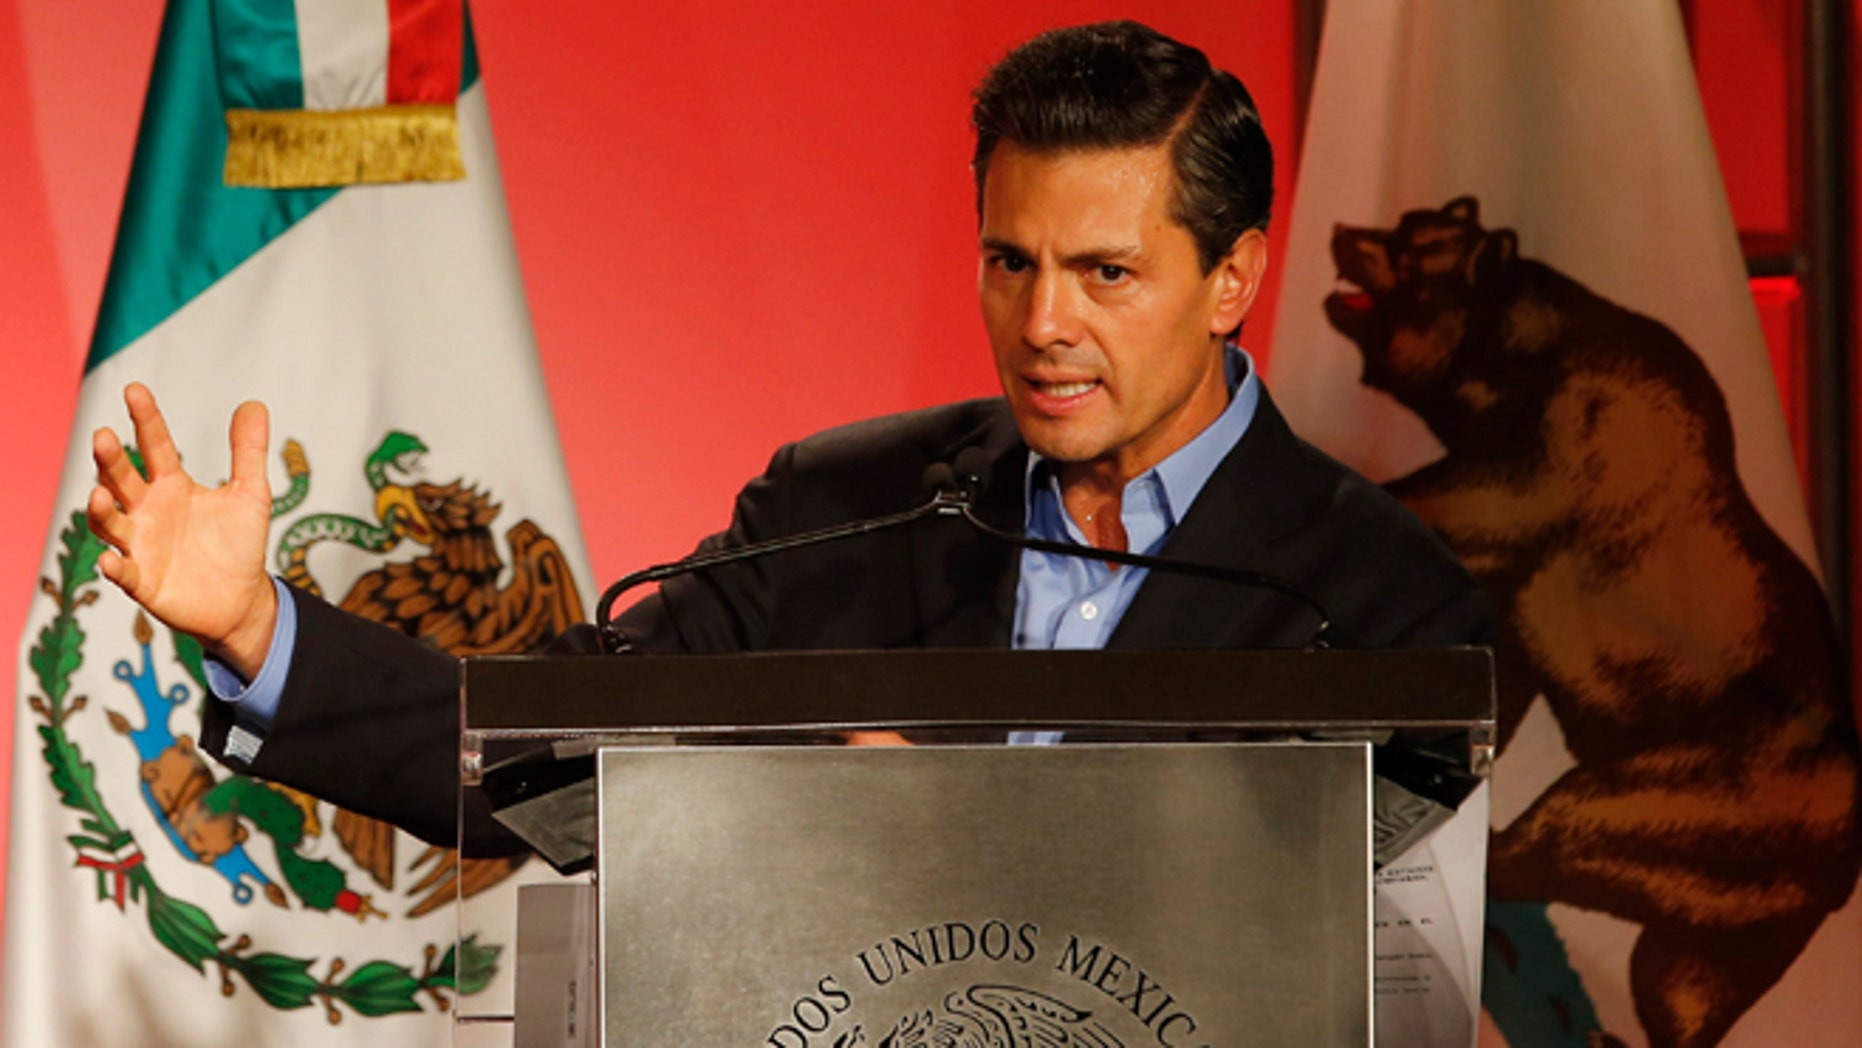 Mexico's President Enrique Pena Nieto speaks to Mexican-American community leaders and others in Los Angeles, Monday, Aug. 25, 2014. (AP Photo/Damian Dovarganes)